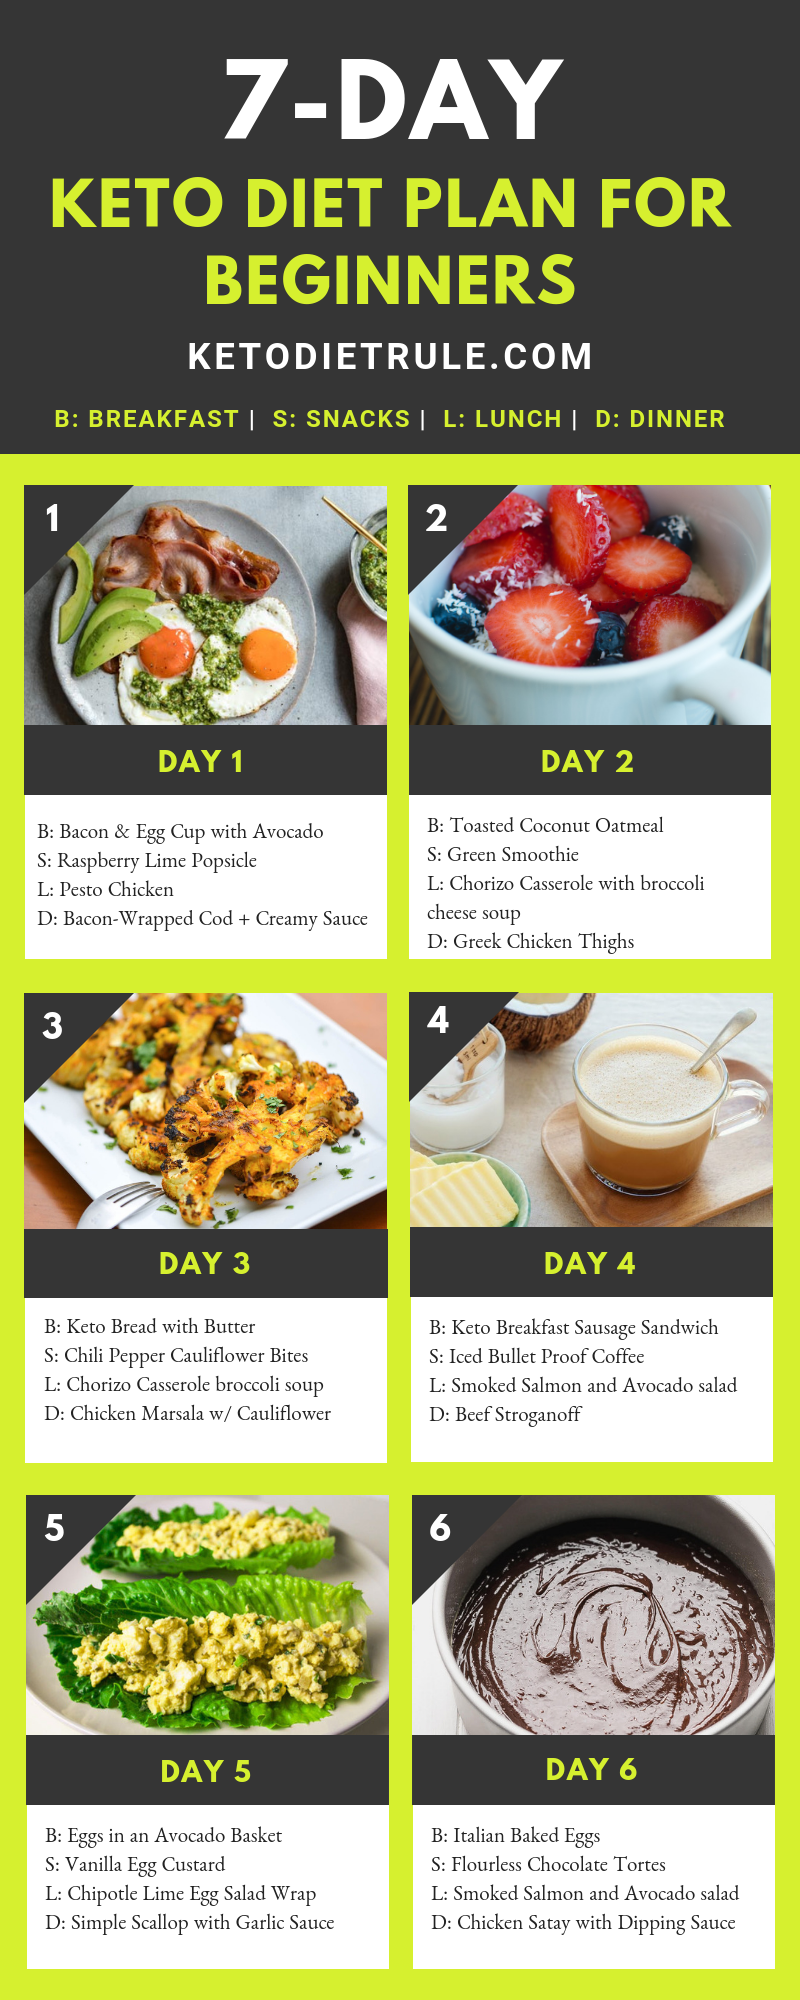 kis keto diet good for weight loss